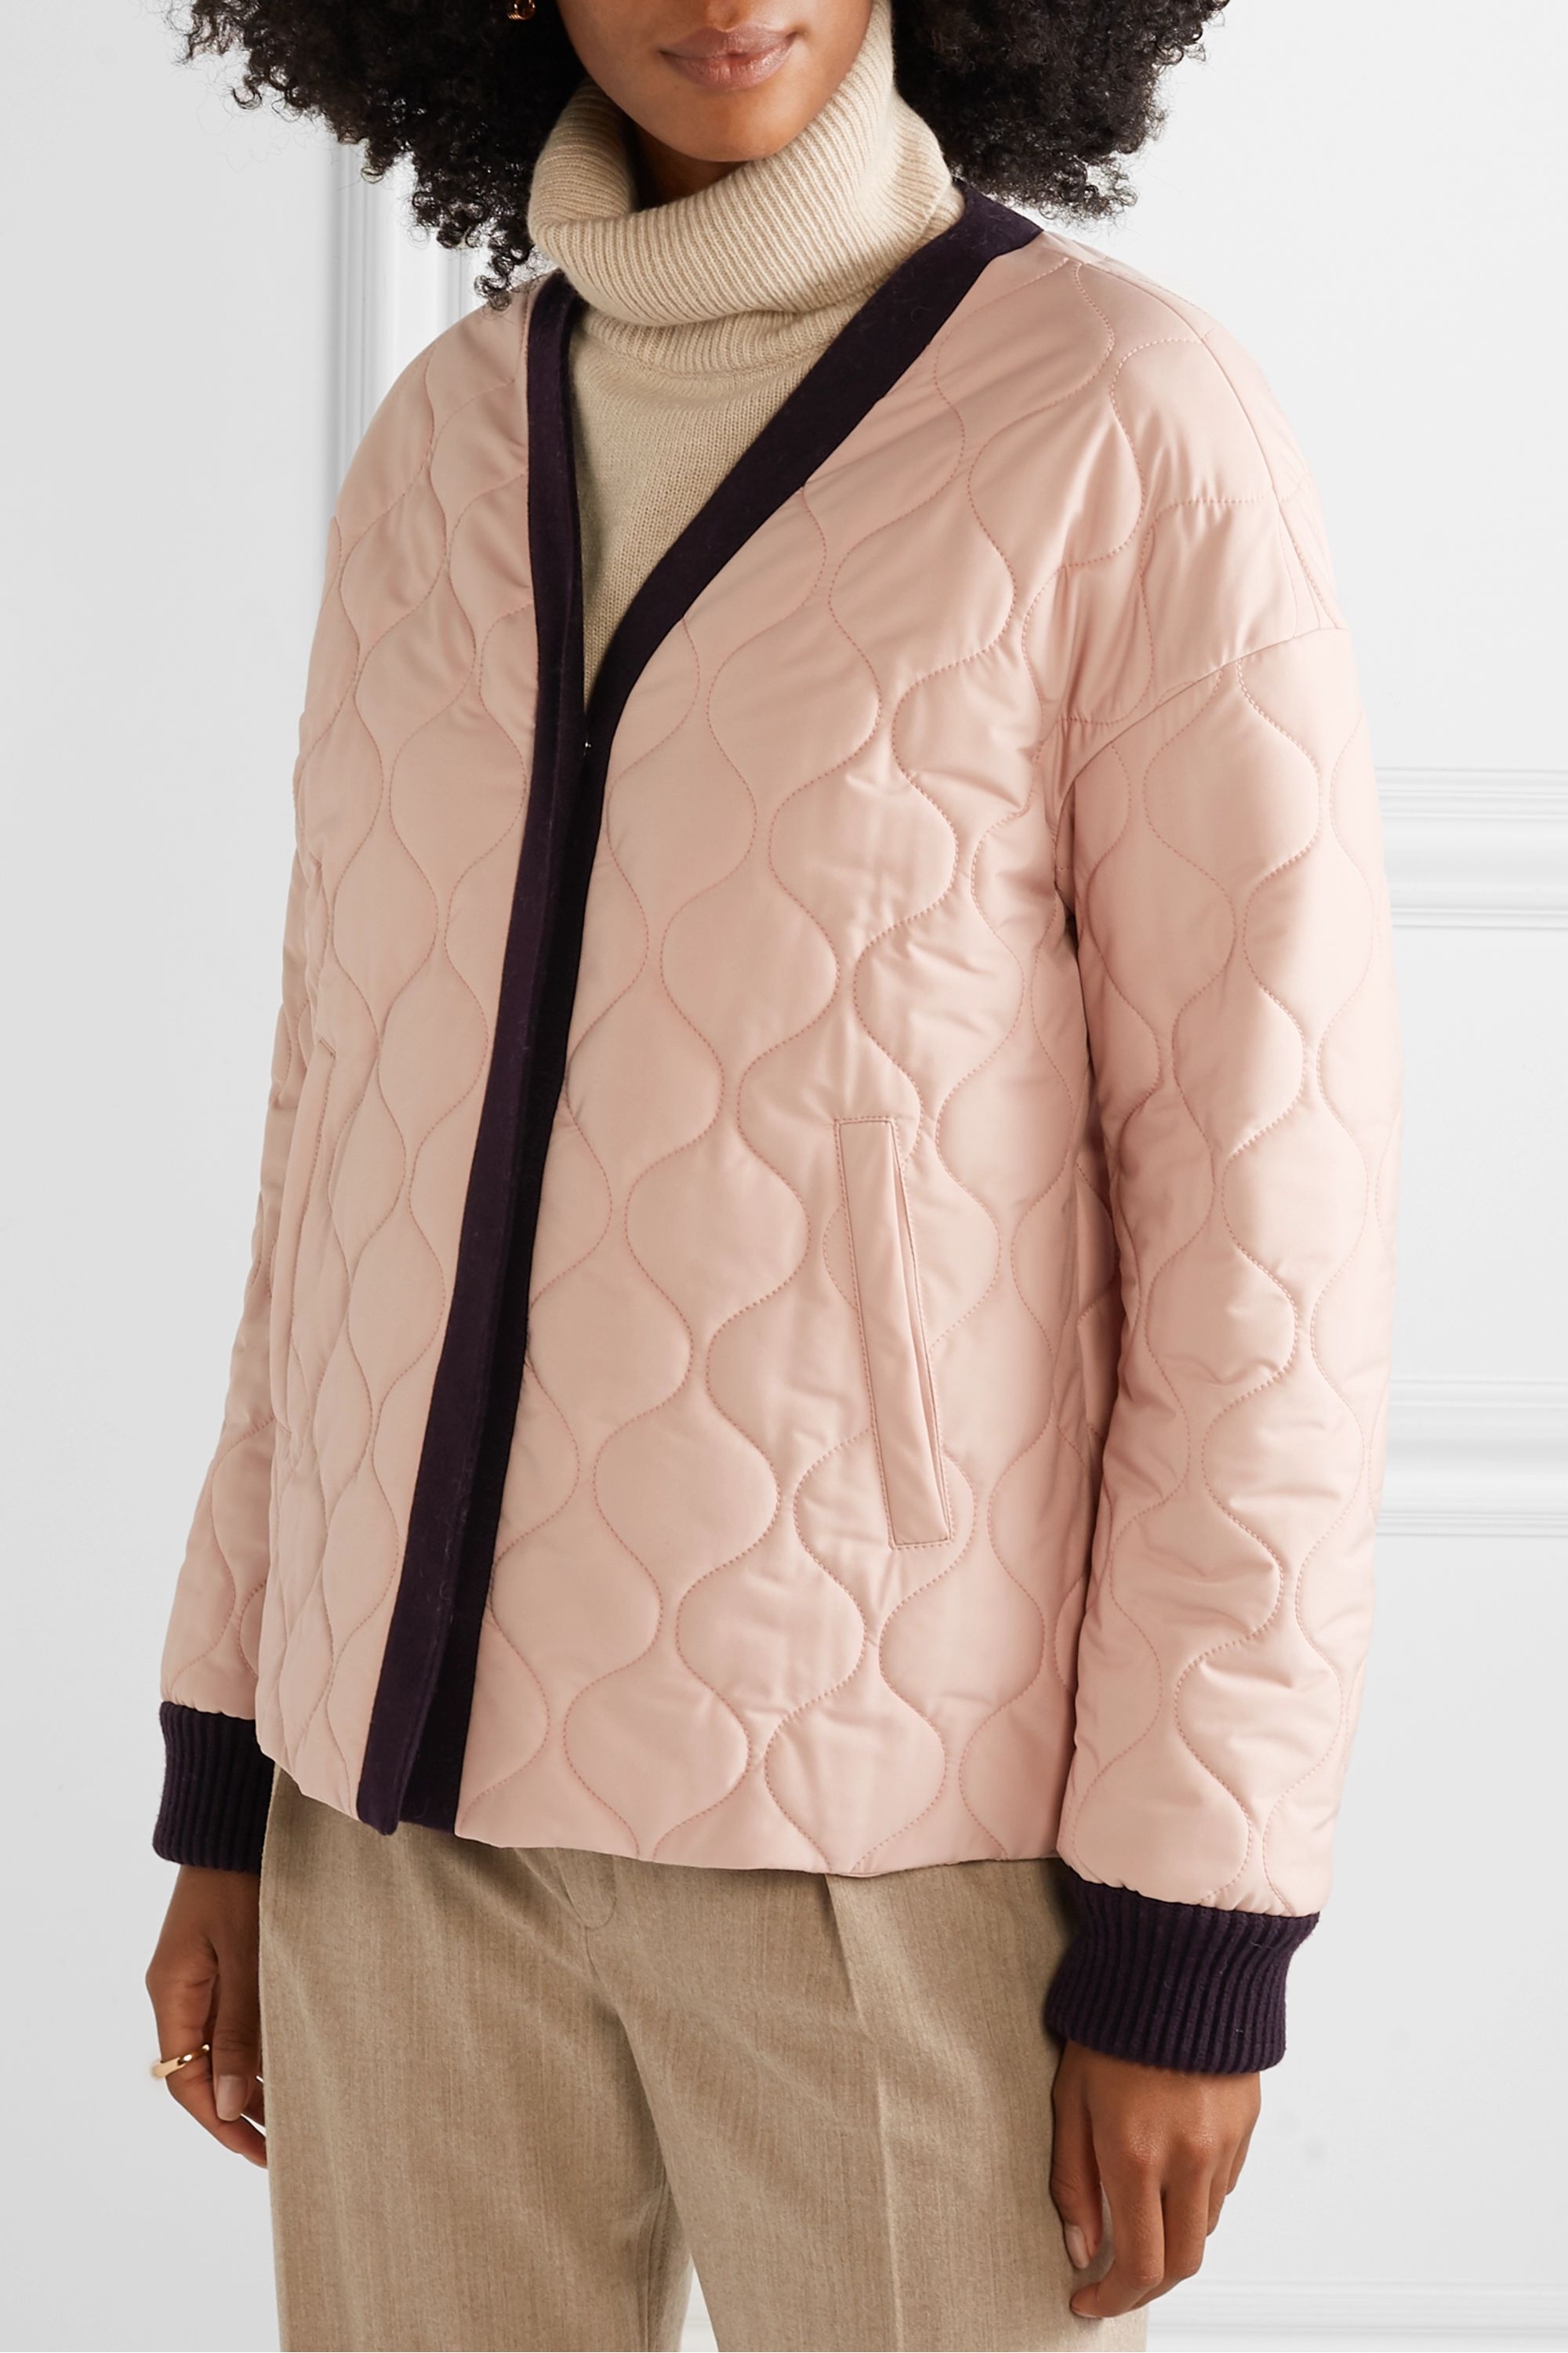 Loro Piana Convertible leather-trimmed cashmere and quilted shell coat